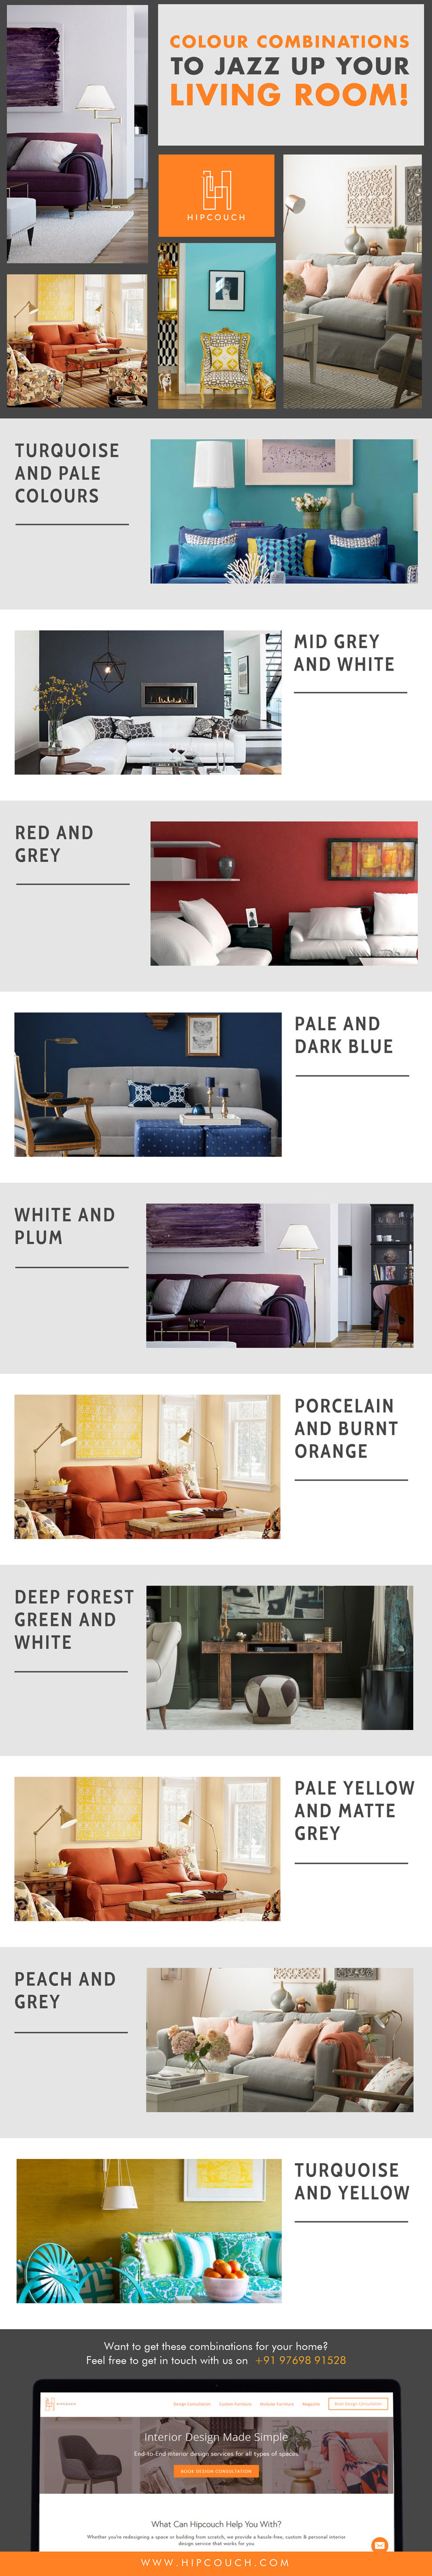 10-colour-combinations-for-your-living-room.jpg